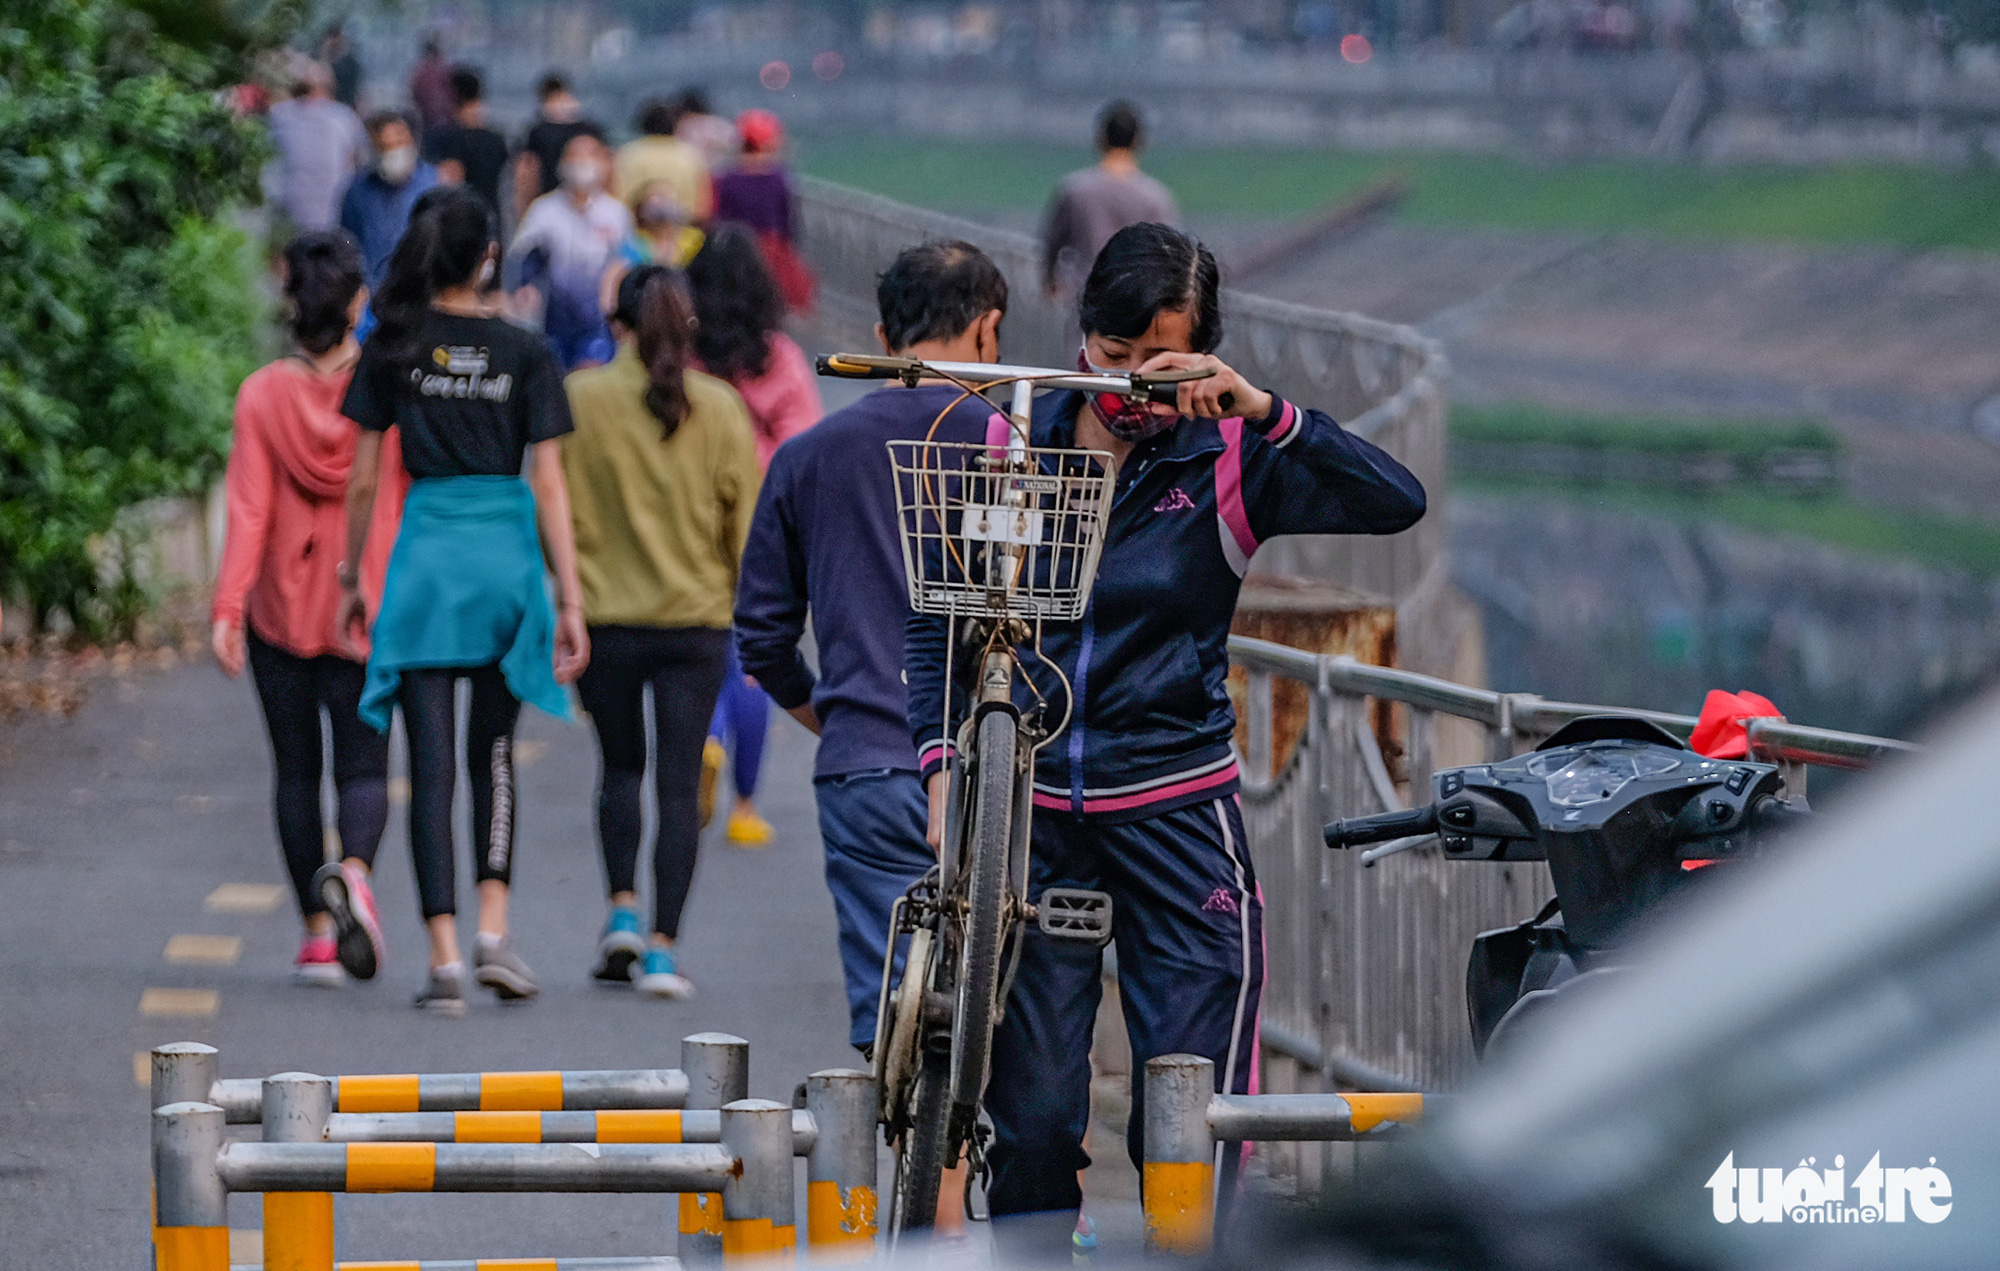 A woman lifts her bicycle over a barrier on a pedestrian lane of Lang Street along To Lich River in Hanoi, Vietnam in this photo taken in early April 2020. Photo: Nam Tran / Tuoi Tre